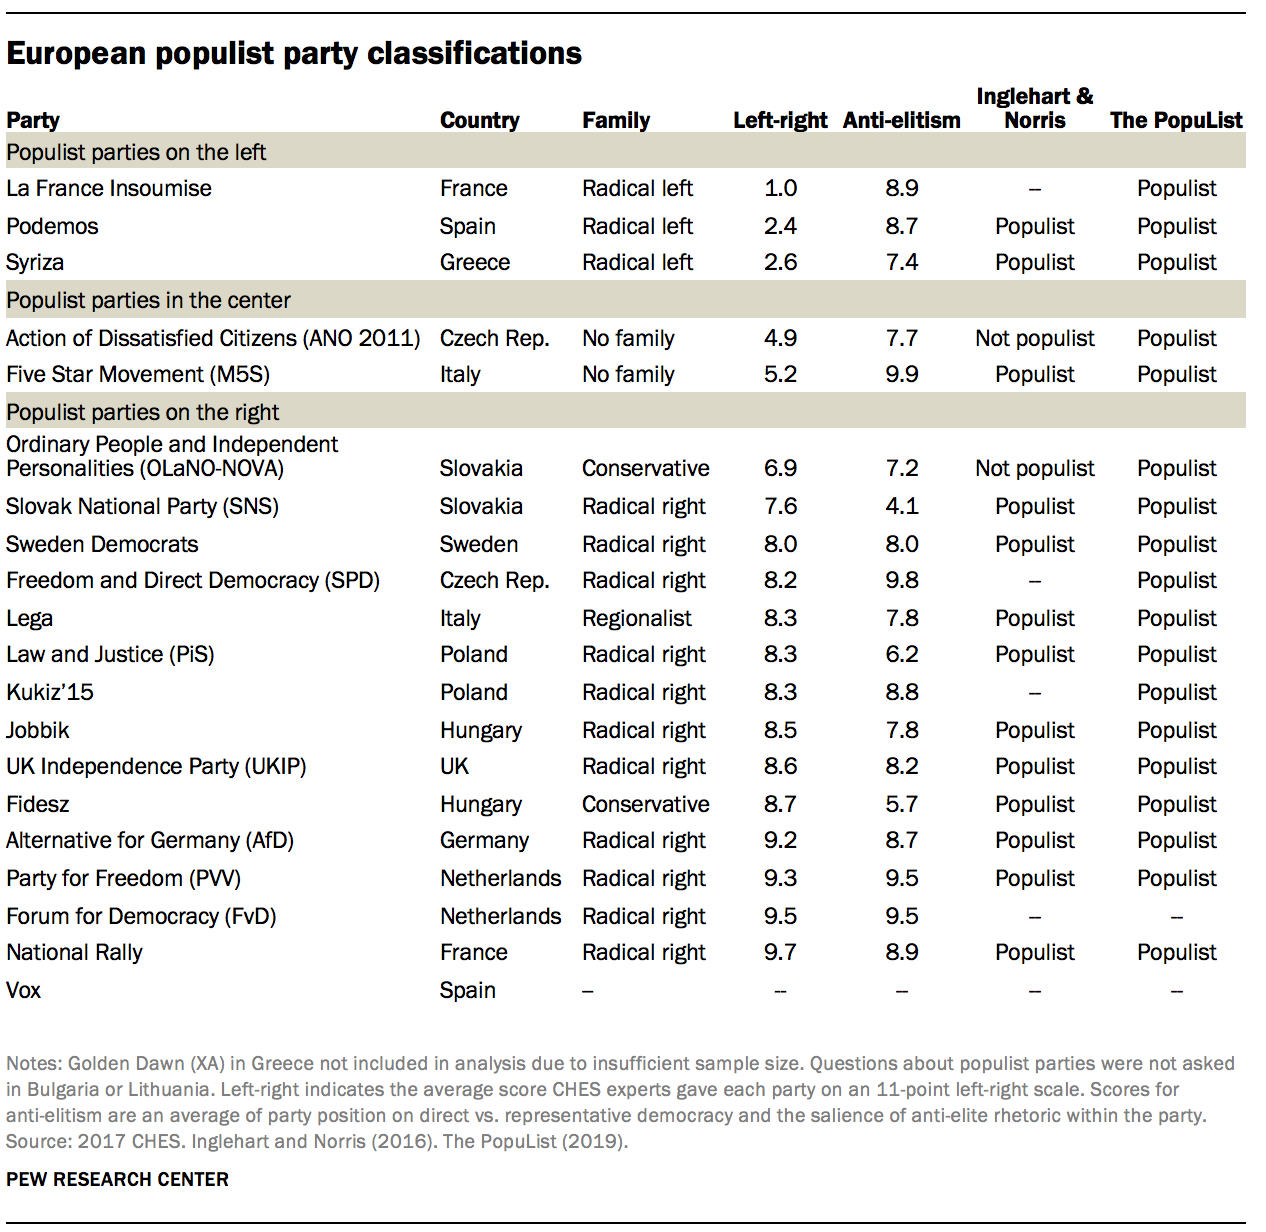 European populist party classifications